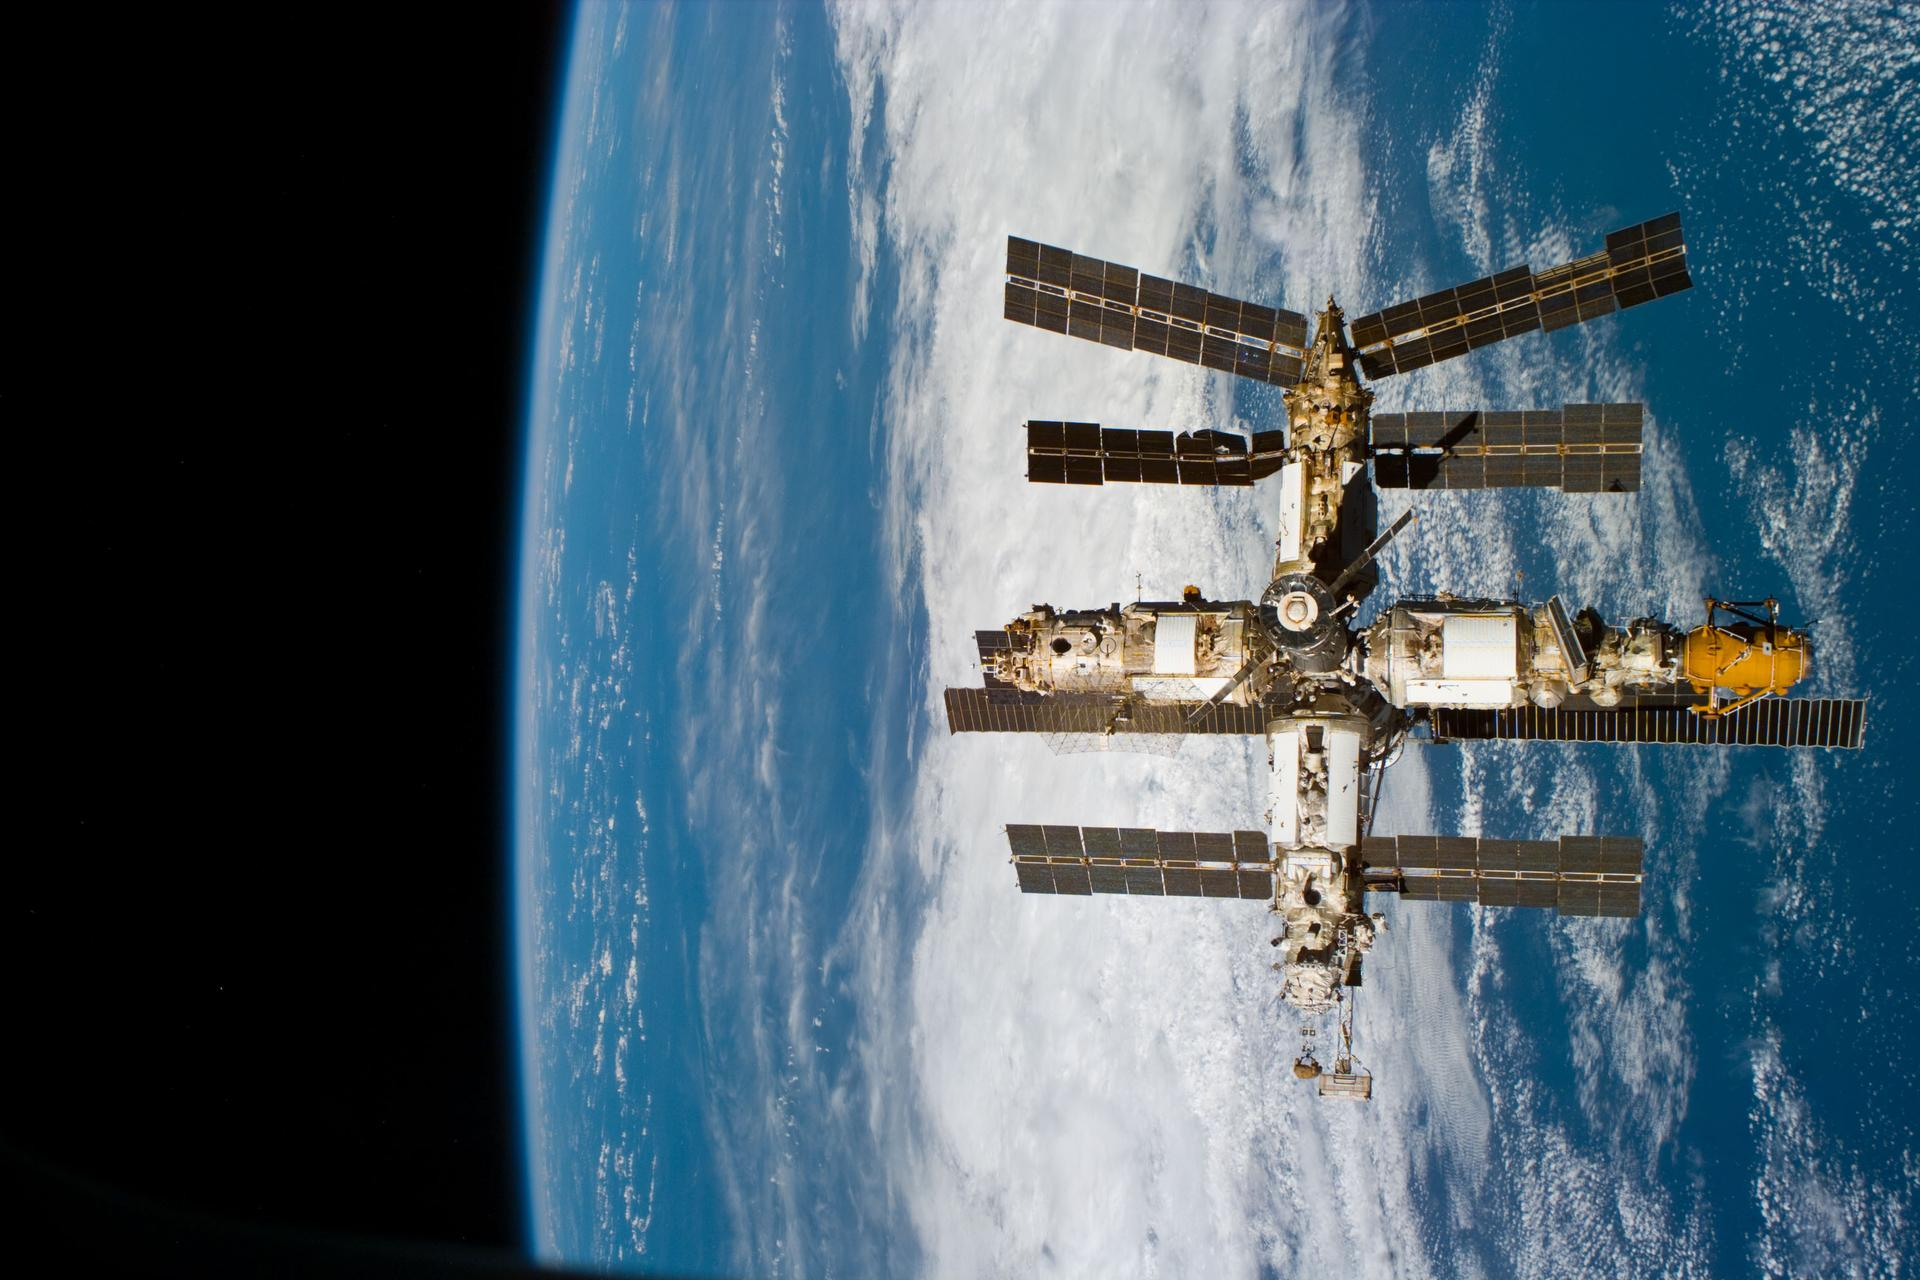 On This Day in Space! Feb. 19, 1986: Mir Space Station Launched